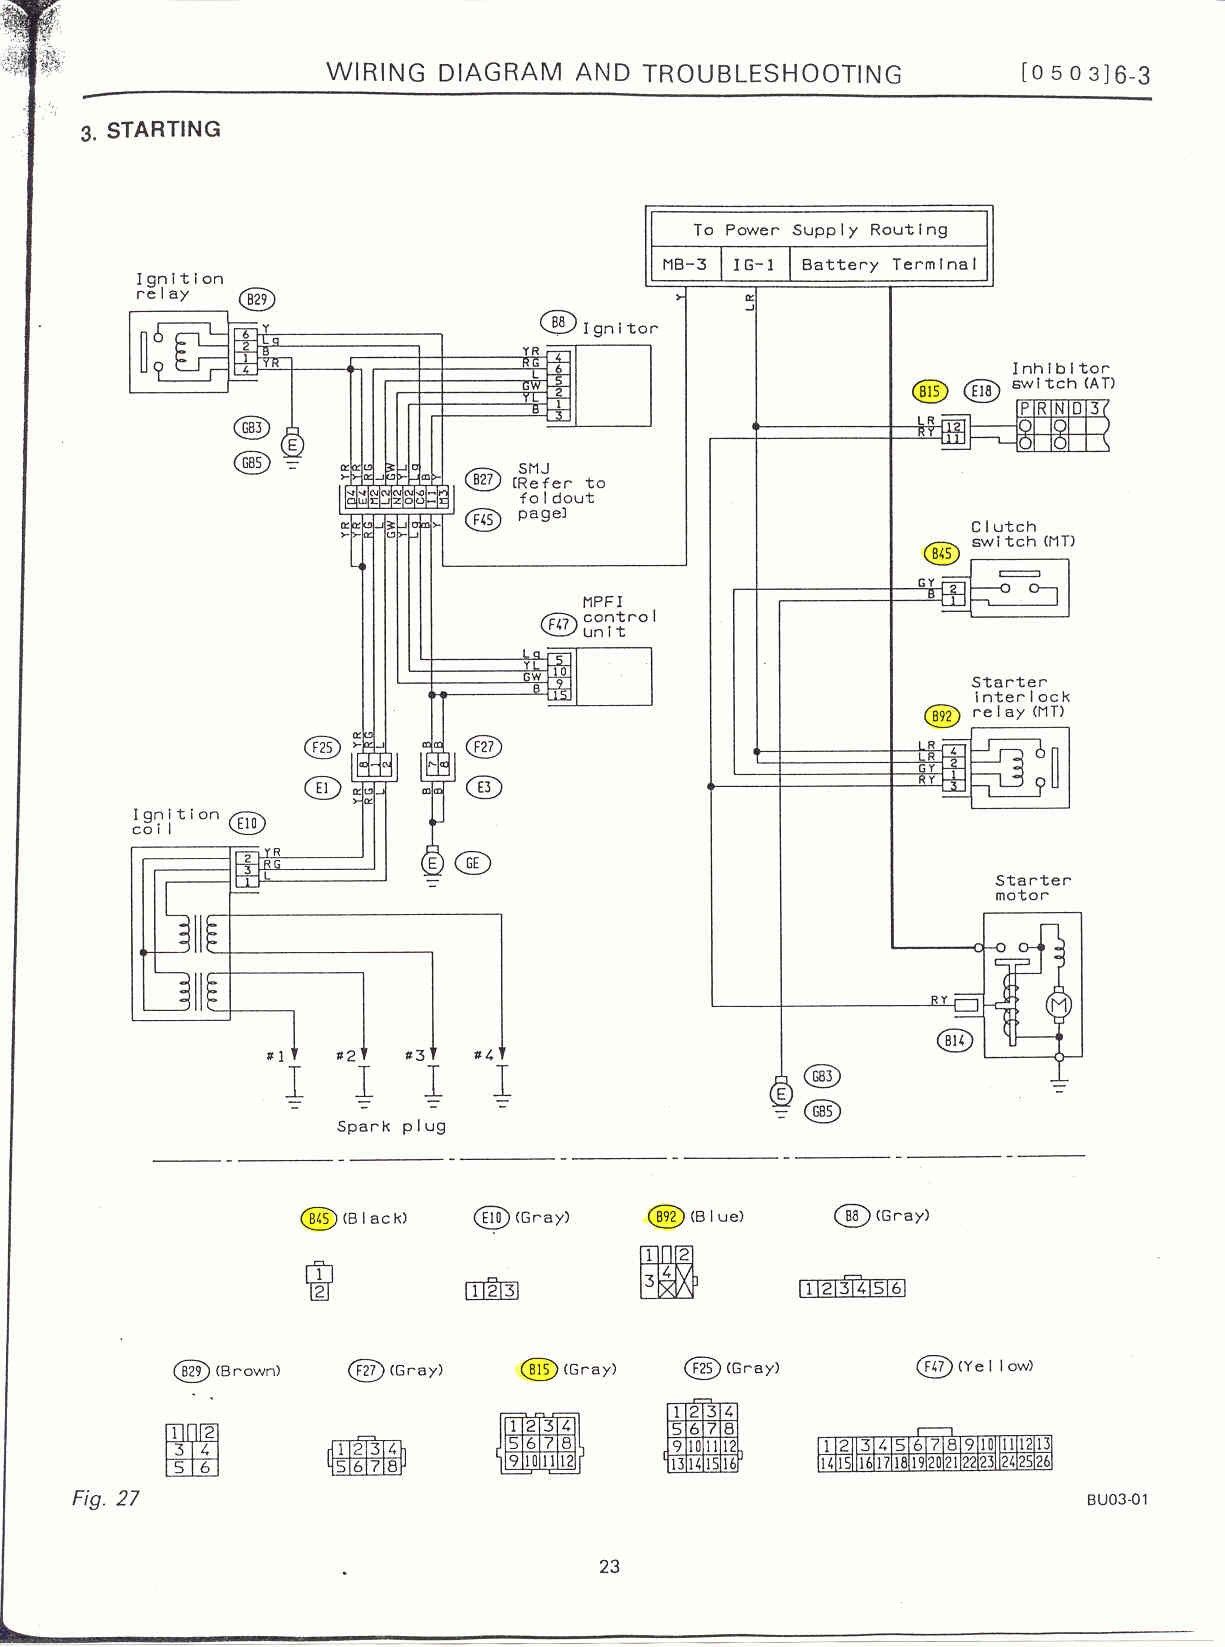 1993 Subaru Legacy Spark Plug Wiring Diagram Trusted 2007 Legacycentral Bbs U2022 View Topic Starting Problem Rh Org Outback